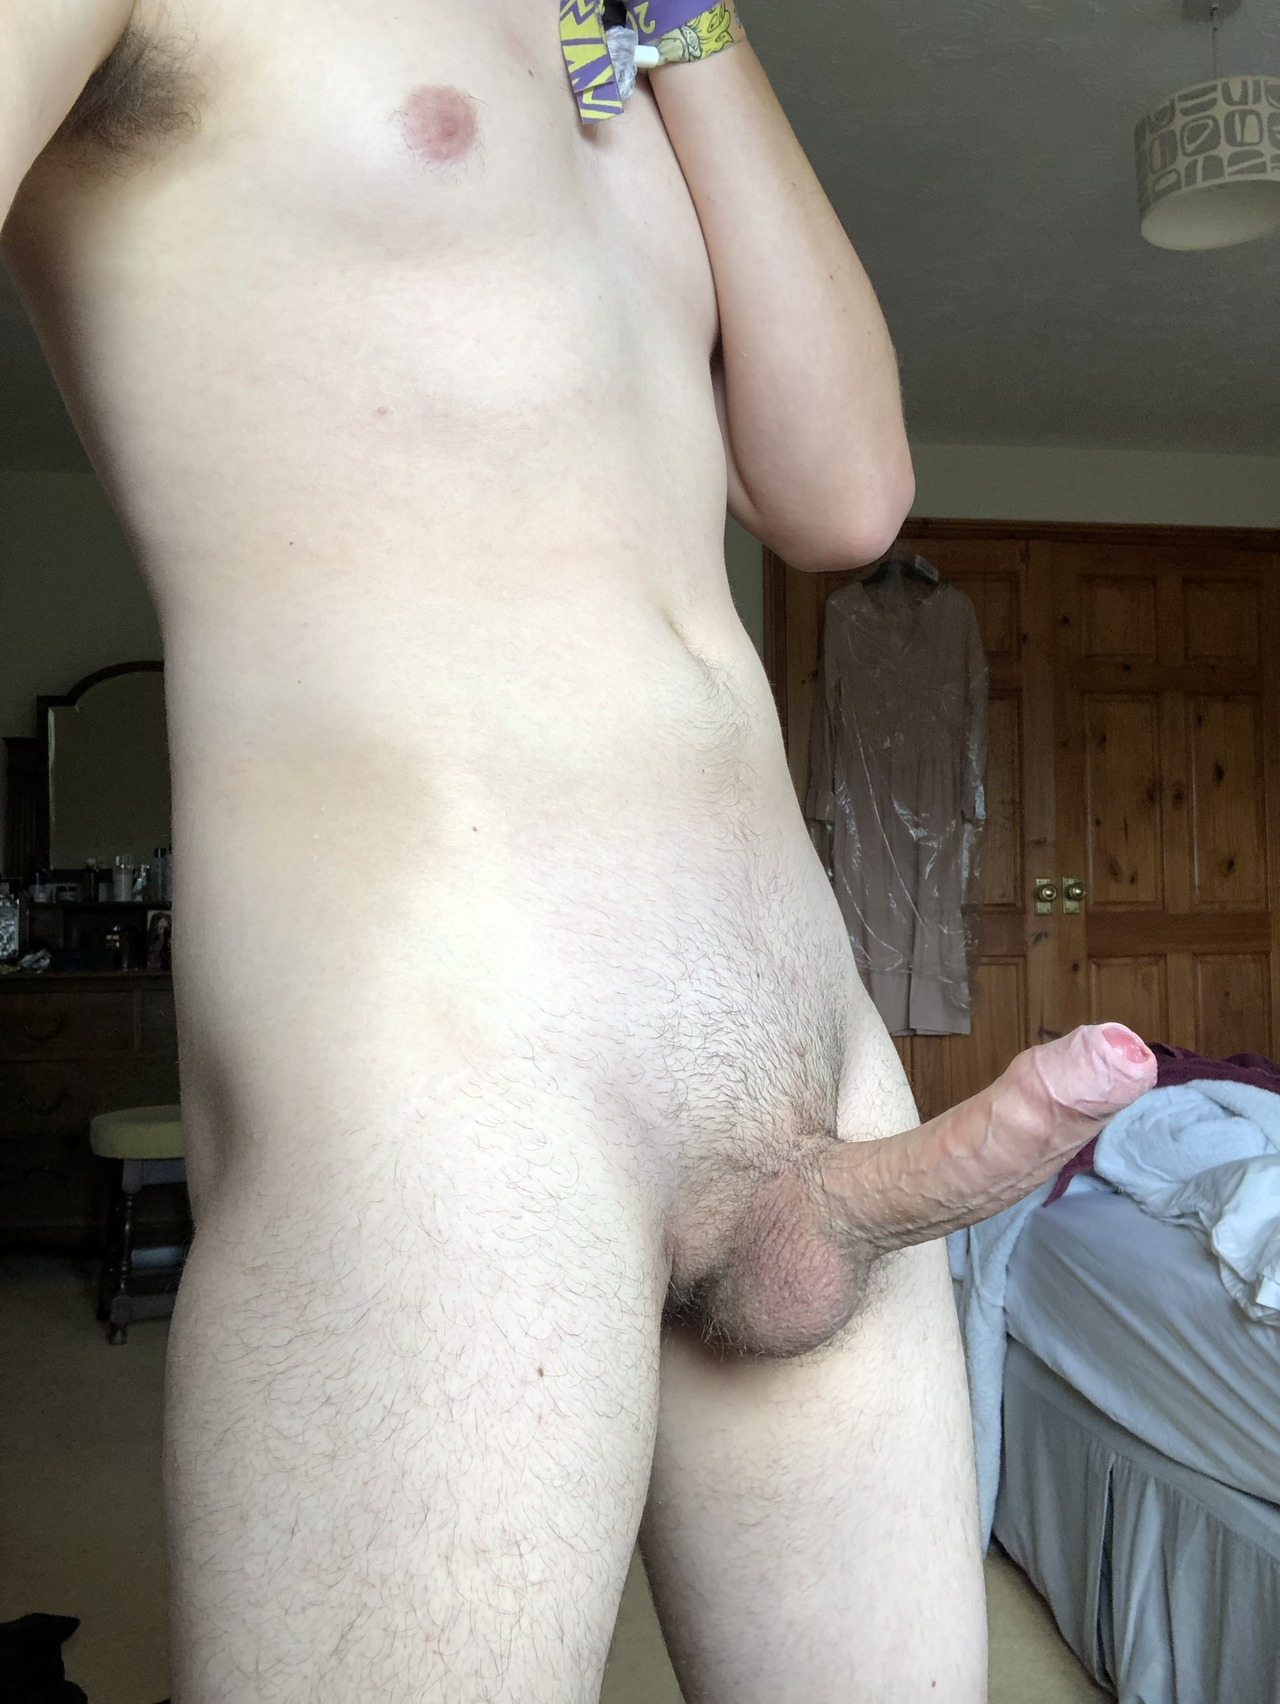 Nude guy with a hard dick